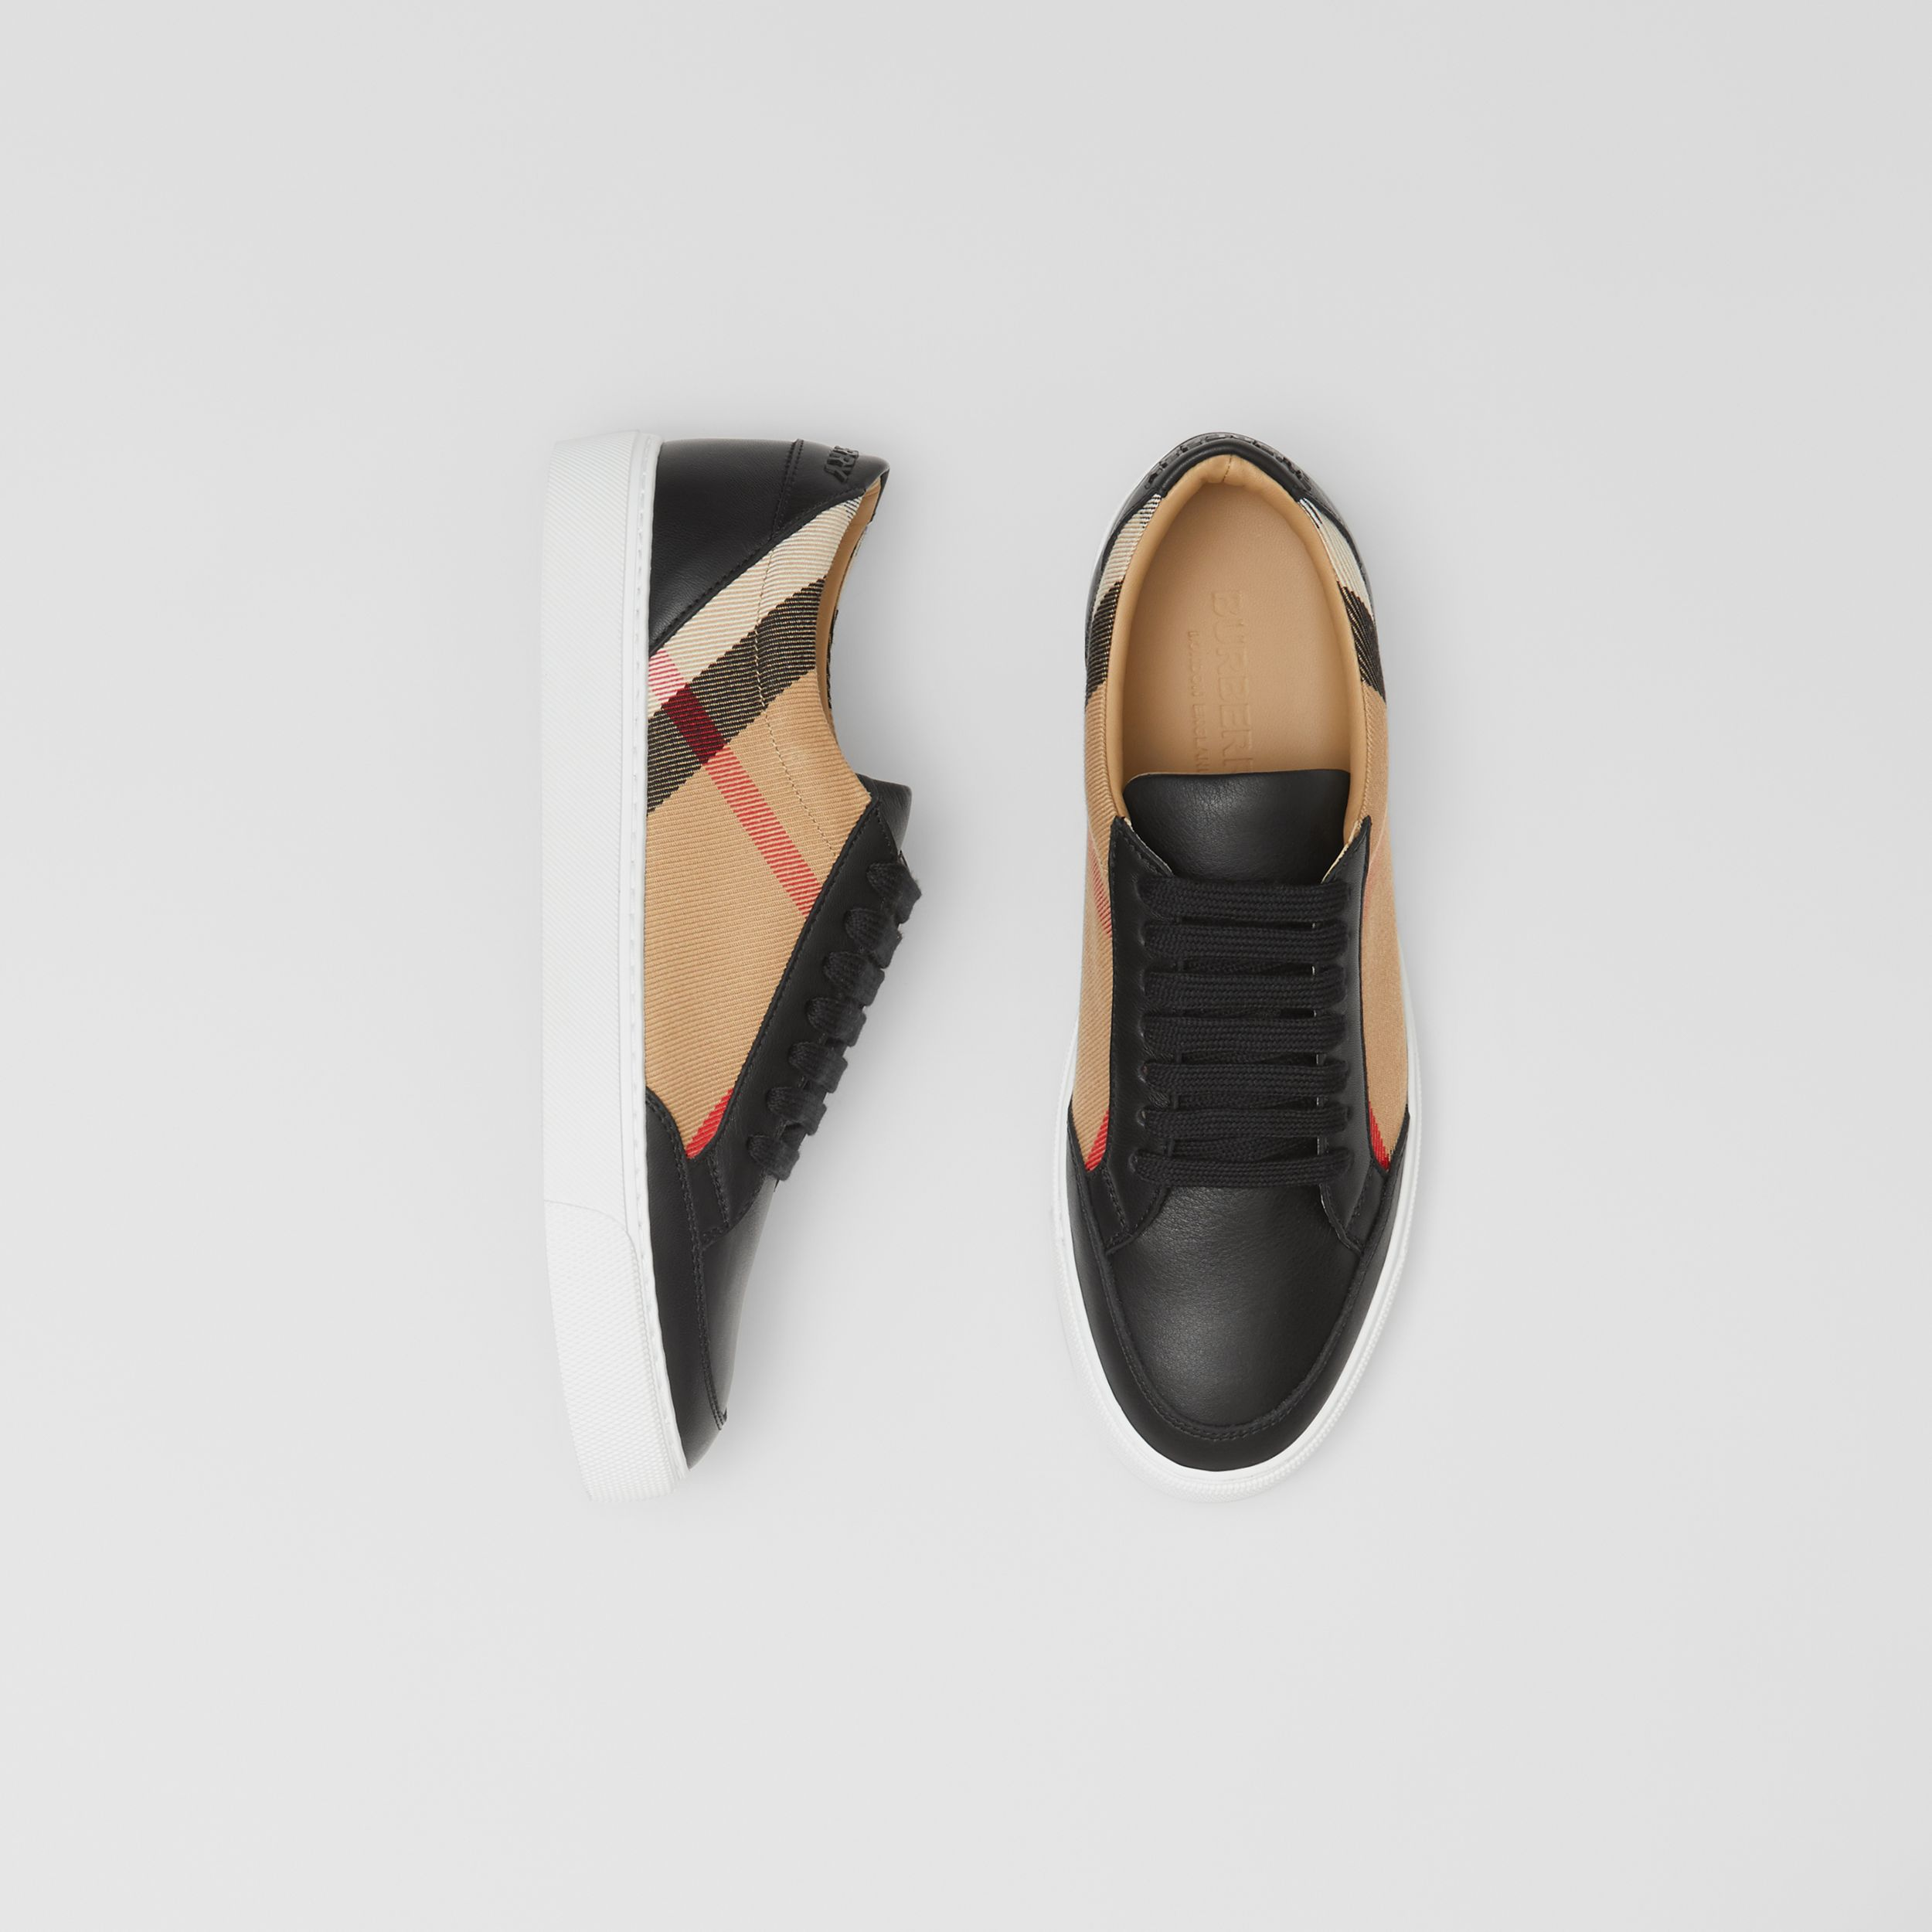 House Check and Leather Sneakers in Black - Women | Burberry - 1